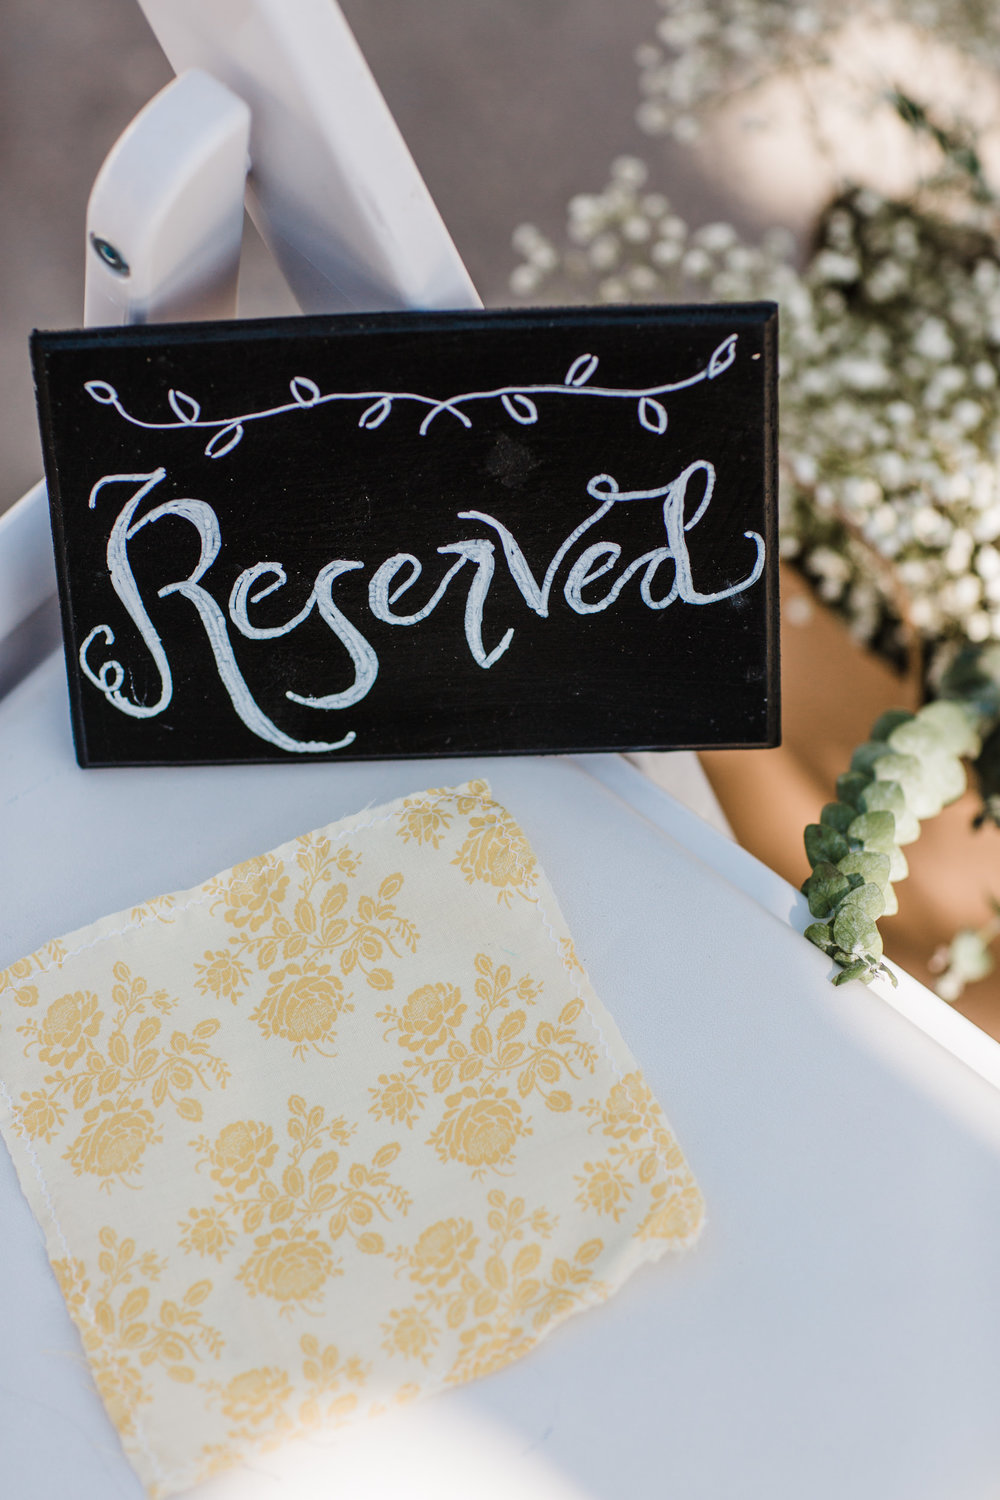 Colorado mountain wedding photographer at Brookeside Gardens details of wedding reception